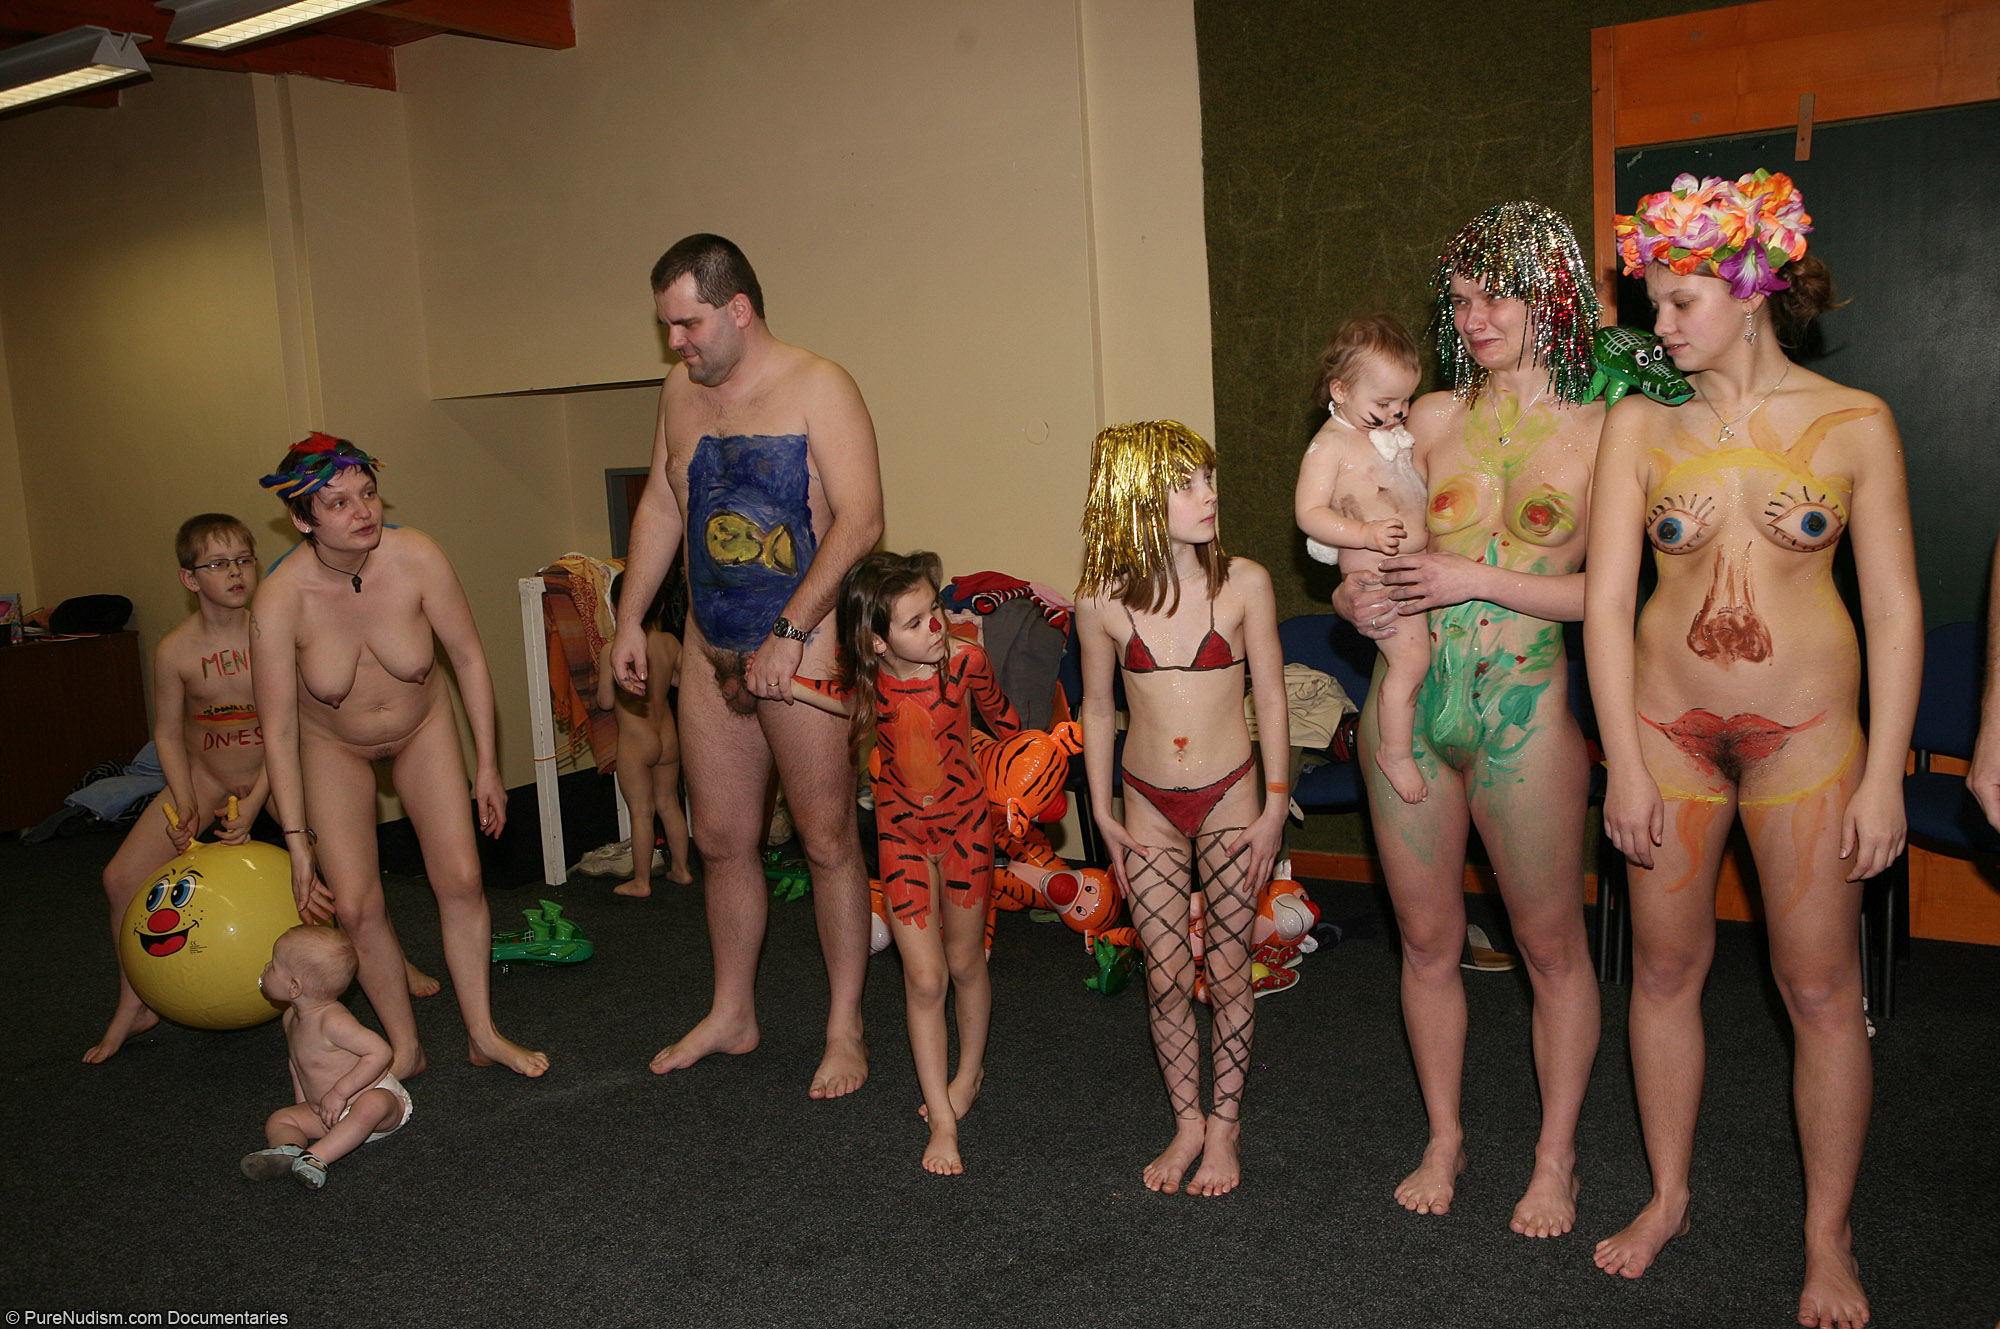 accidental pitures of diving women nude